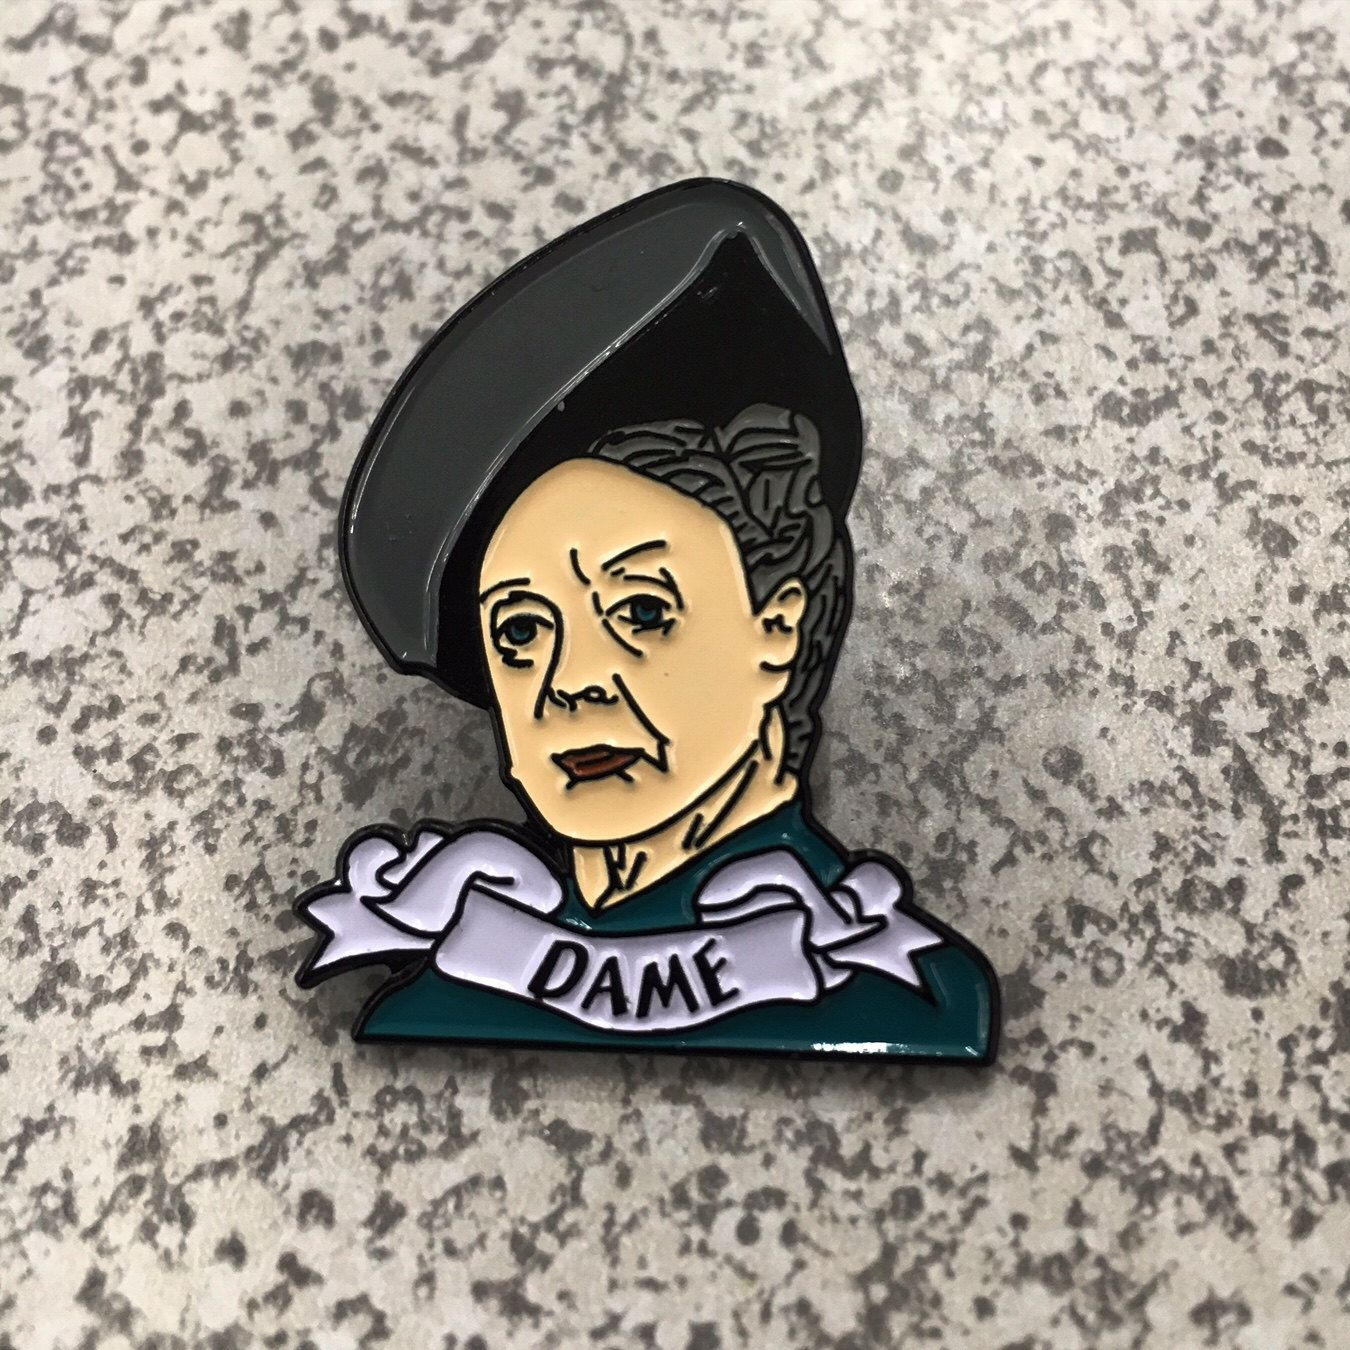 Dame Maggie Smith   **Limited to 100** by LorettaPinn on Etsy https://www.etsy.com/listing/459597638/dame-maggie-smith-limited-to-100